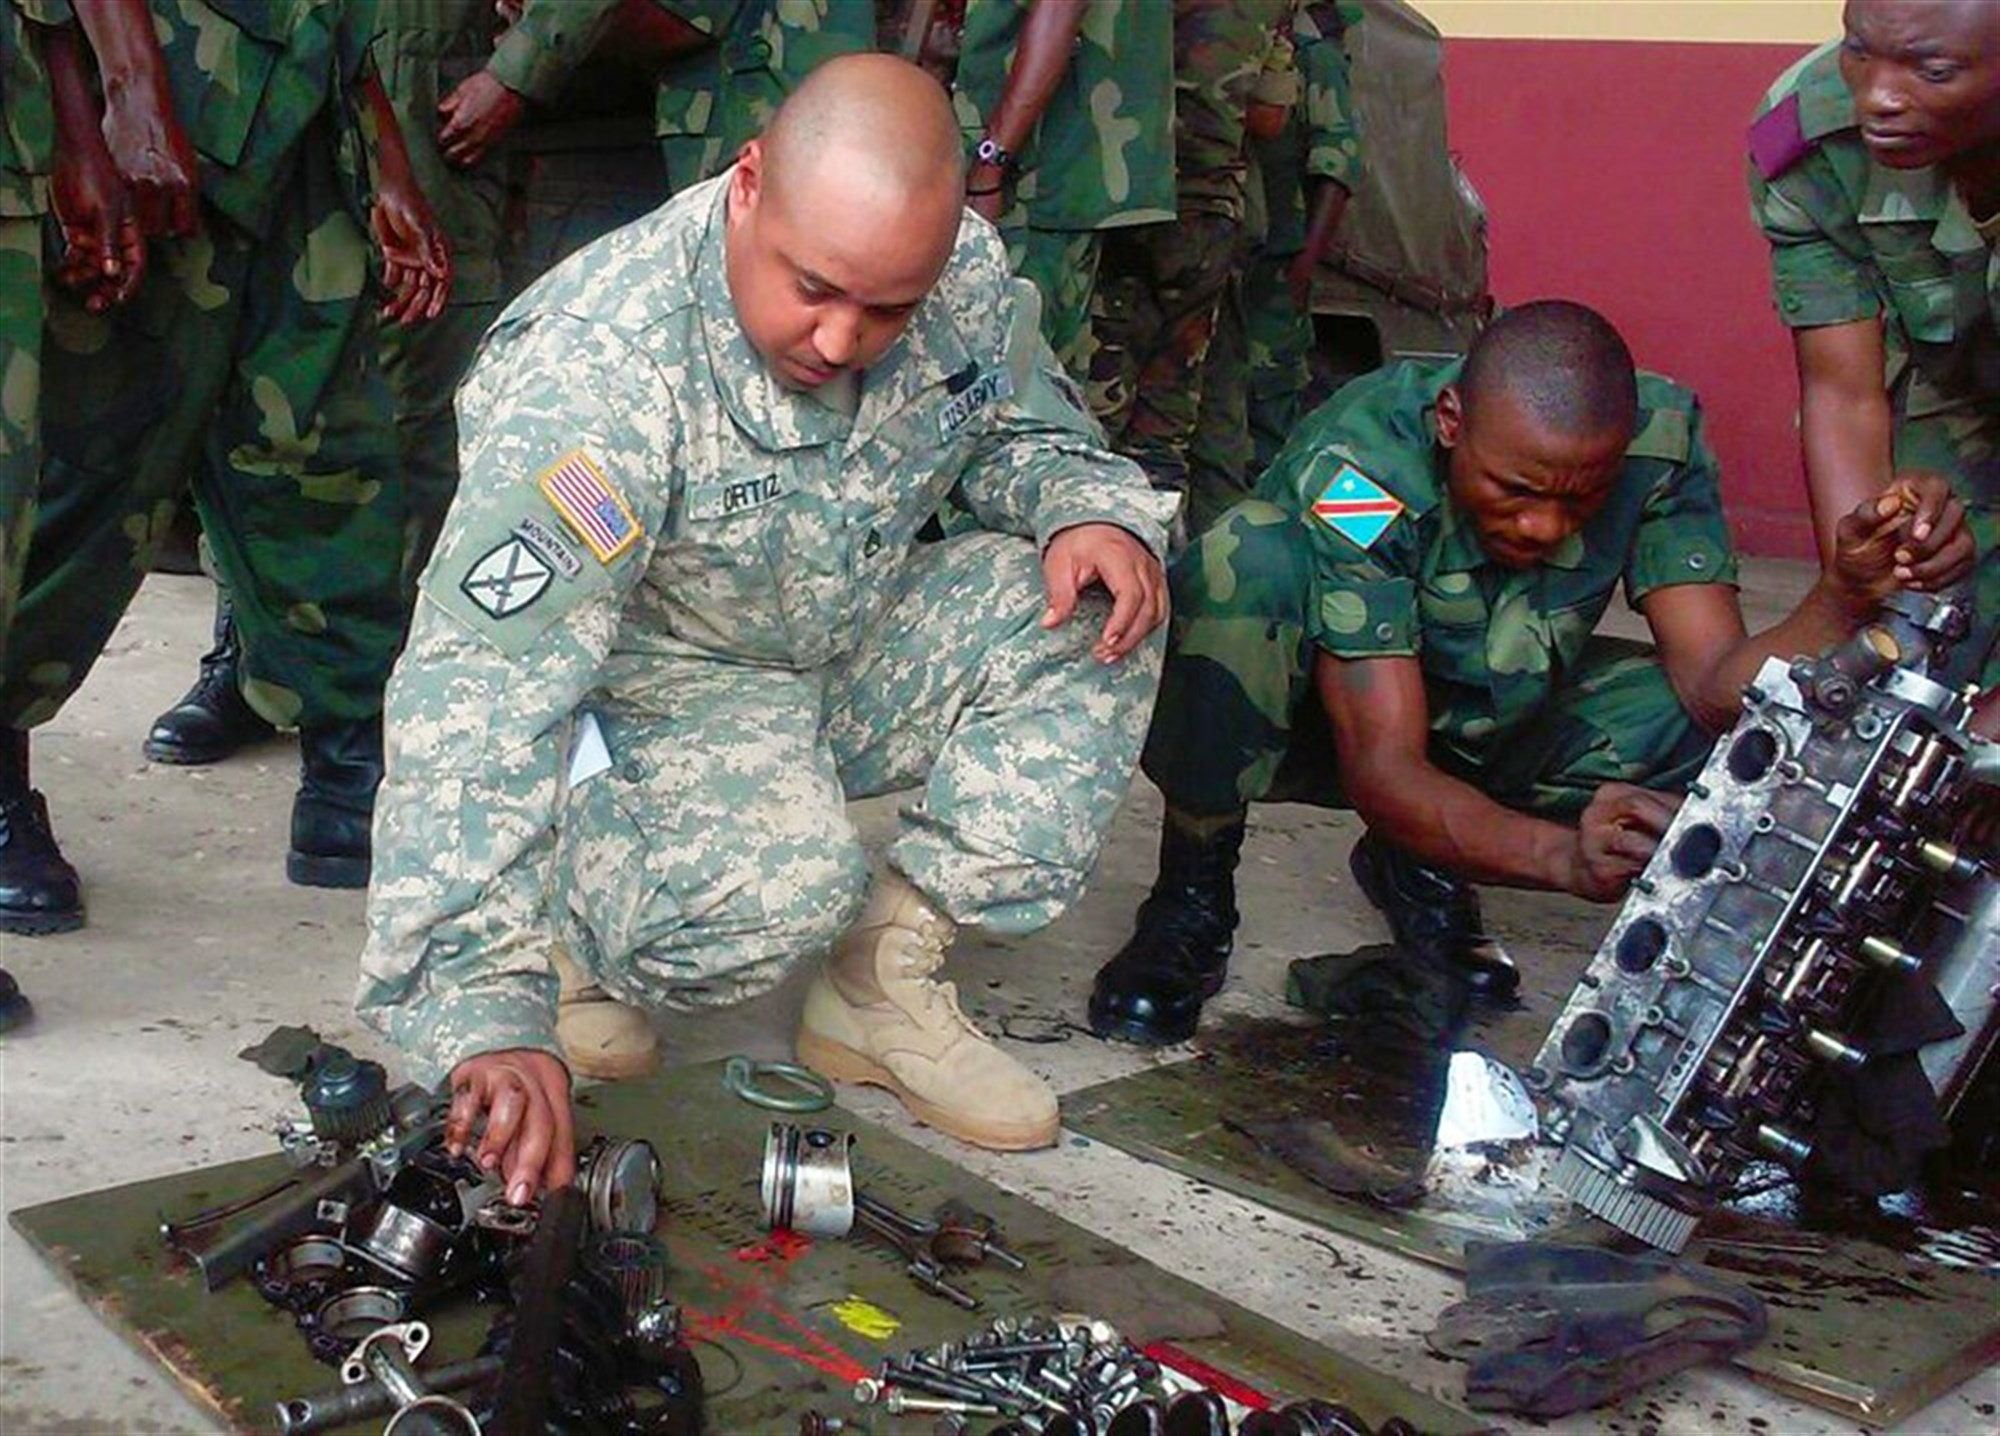 U.S. Army Africa's role in supporting training through the Democratic Republic of Congo's Defense Logistics School is an example of how AFRICOM can increase the capacity of partner nations to provide logistics support to their own forces. Here, Staff Sgt. Roberto Ortiz, a wheeled vehicle mechanic from AFRICOM's Regionally Aligned Force, 3rd Brigade, 1st Armored Division from Fort Bliss, Texas, provides assistance to a DRC student rebuilding a light truck engine during hands on training at the DRC Logistics School. (U.S. Army Africa photo)